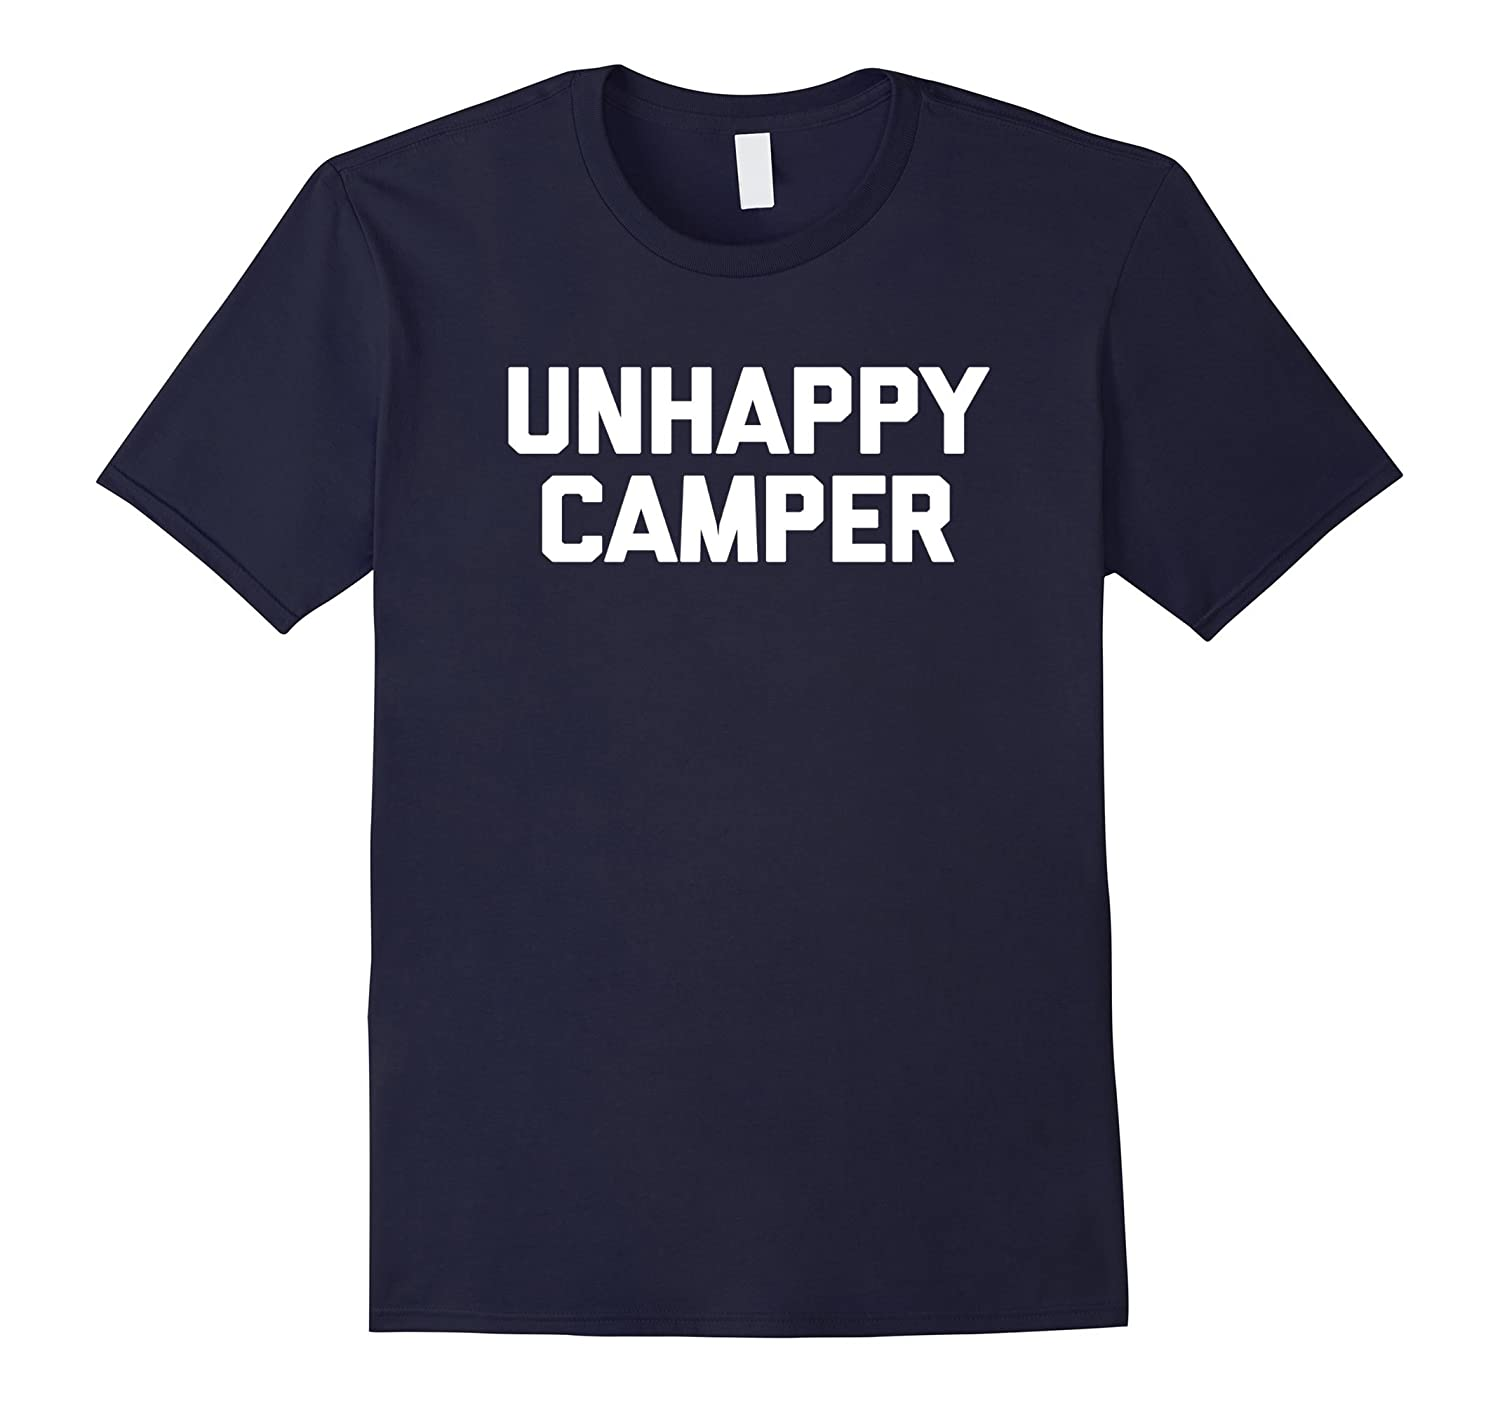 Funny Camping Shirt Unhappy Camper T Saying Tee Art